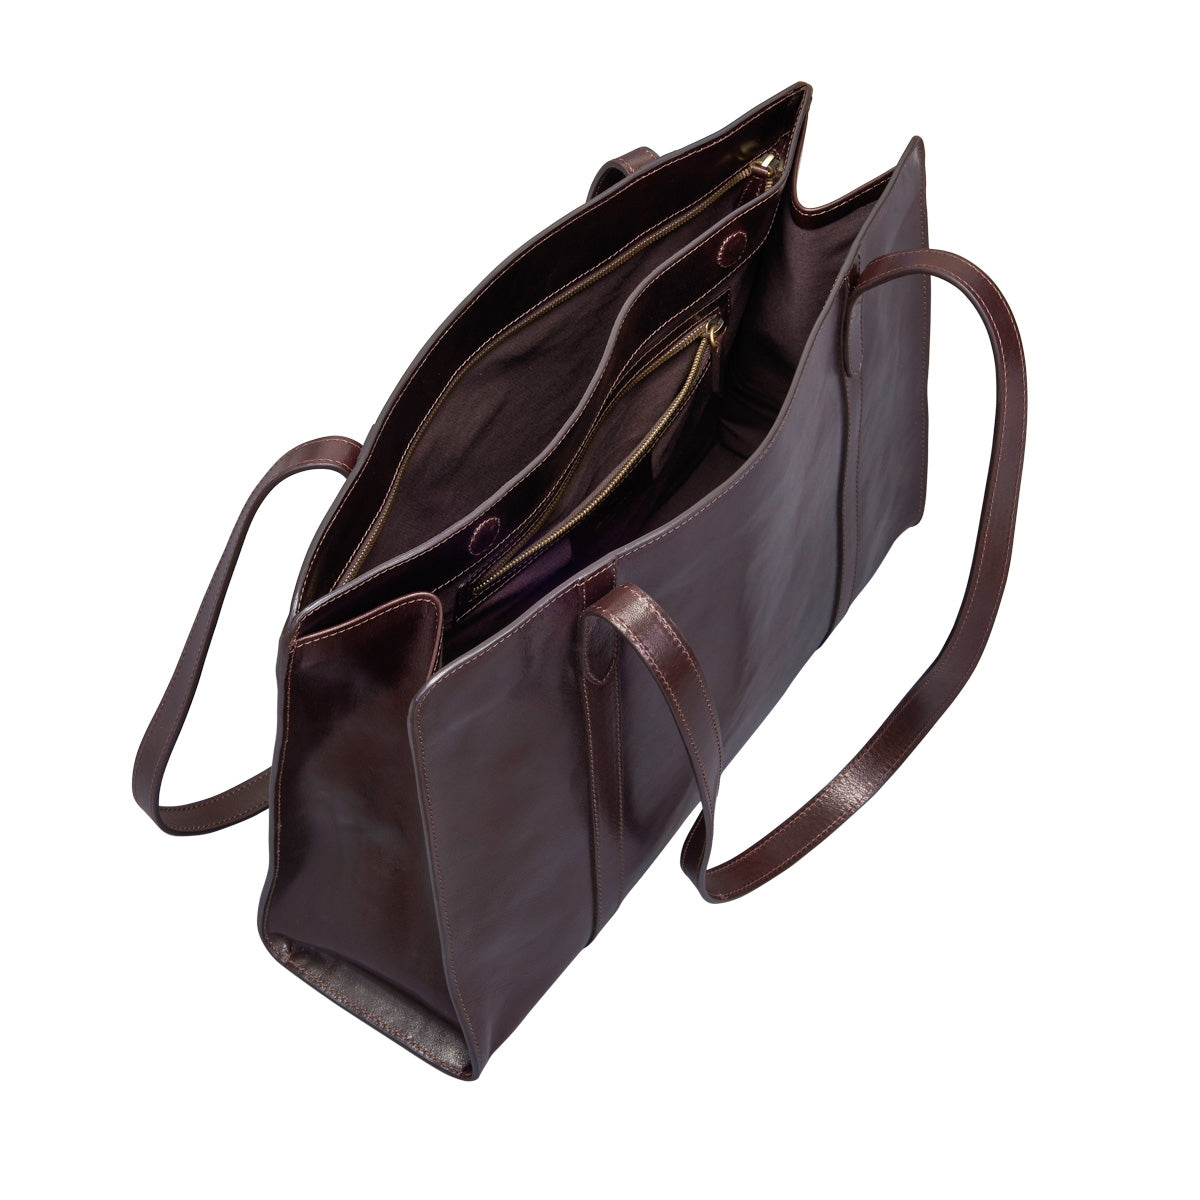 Image 5 of the 'Rivara' Large Dark Chocolate Veg-Tanned Leather Shoulder Bag